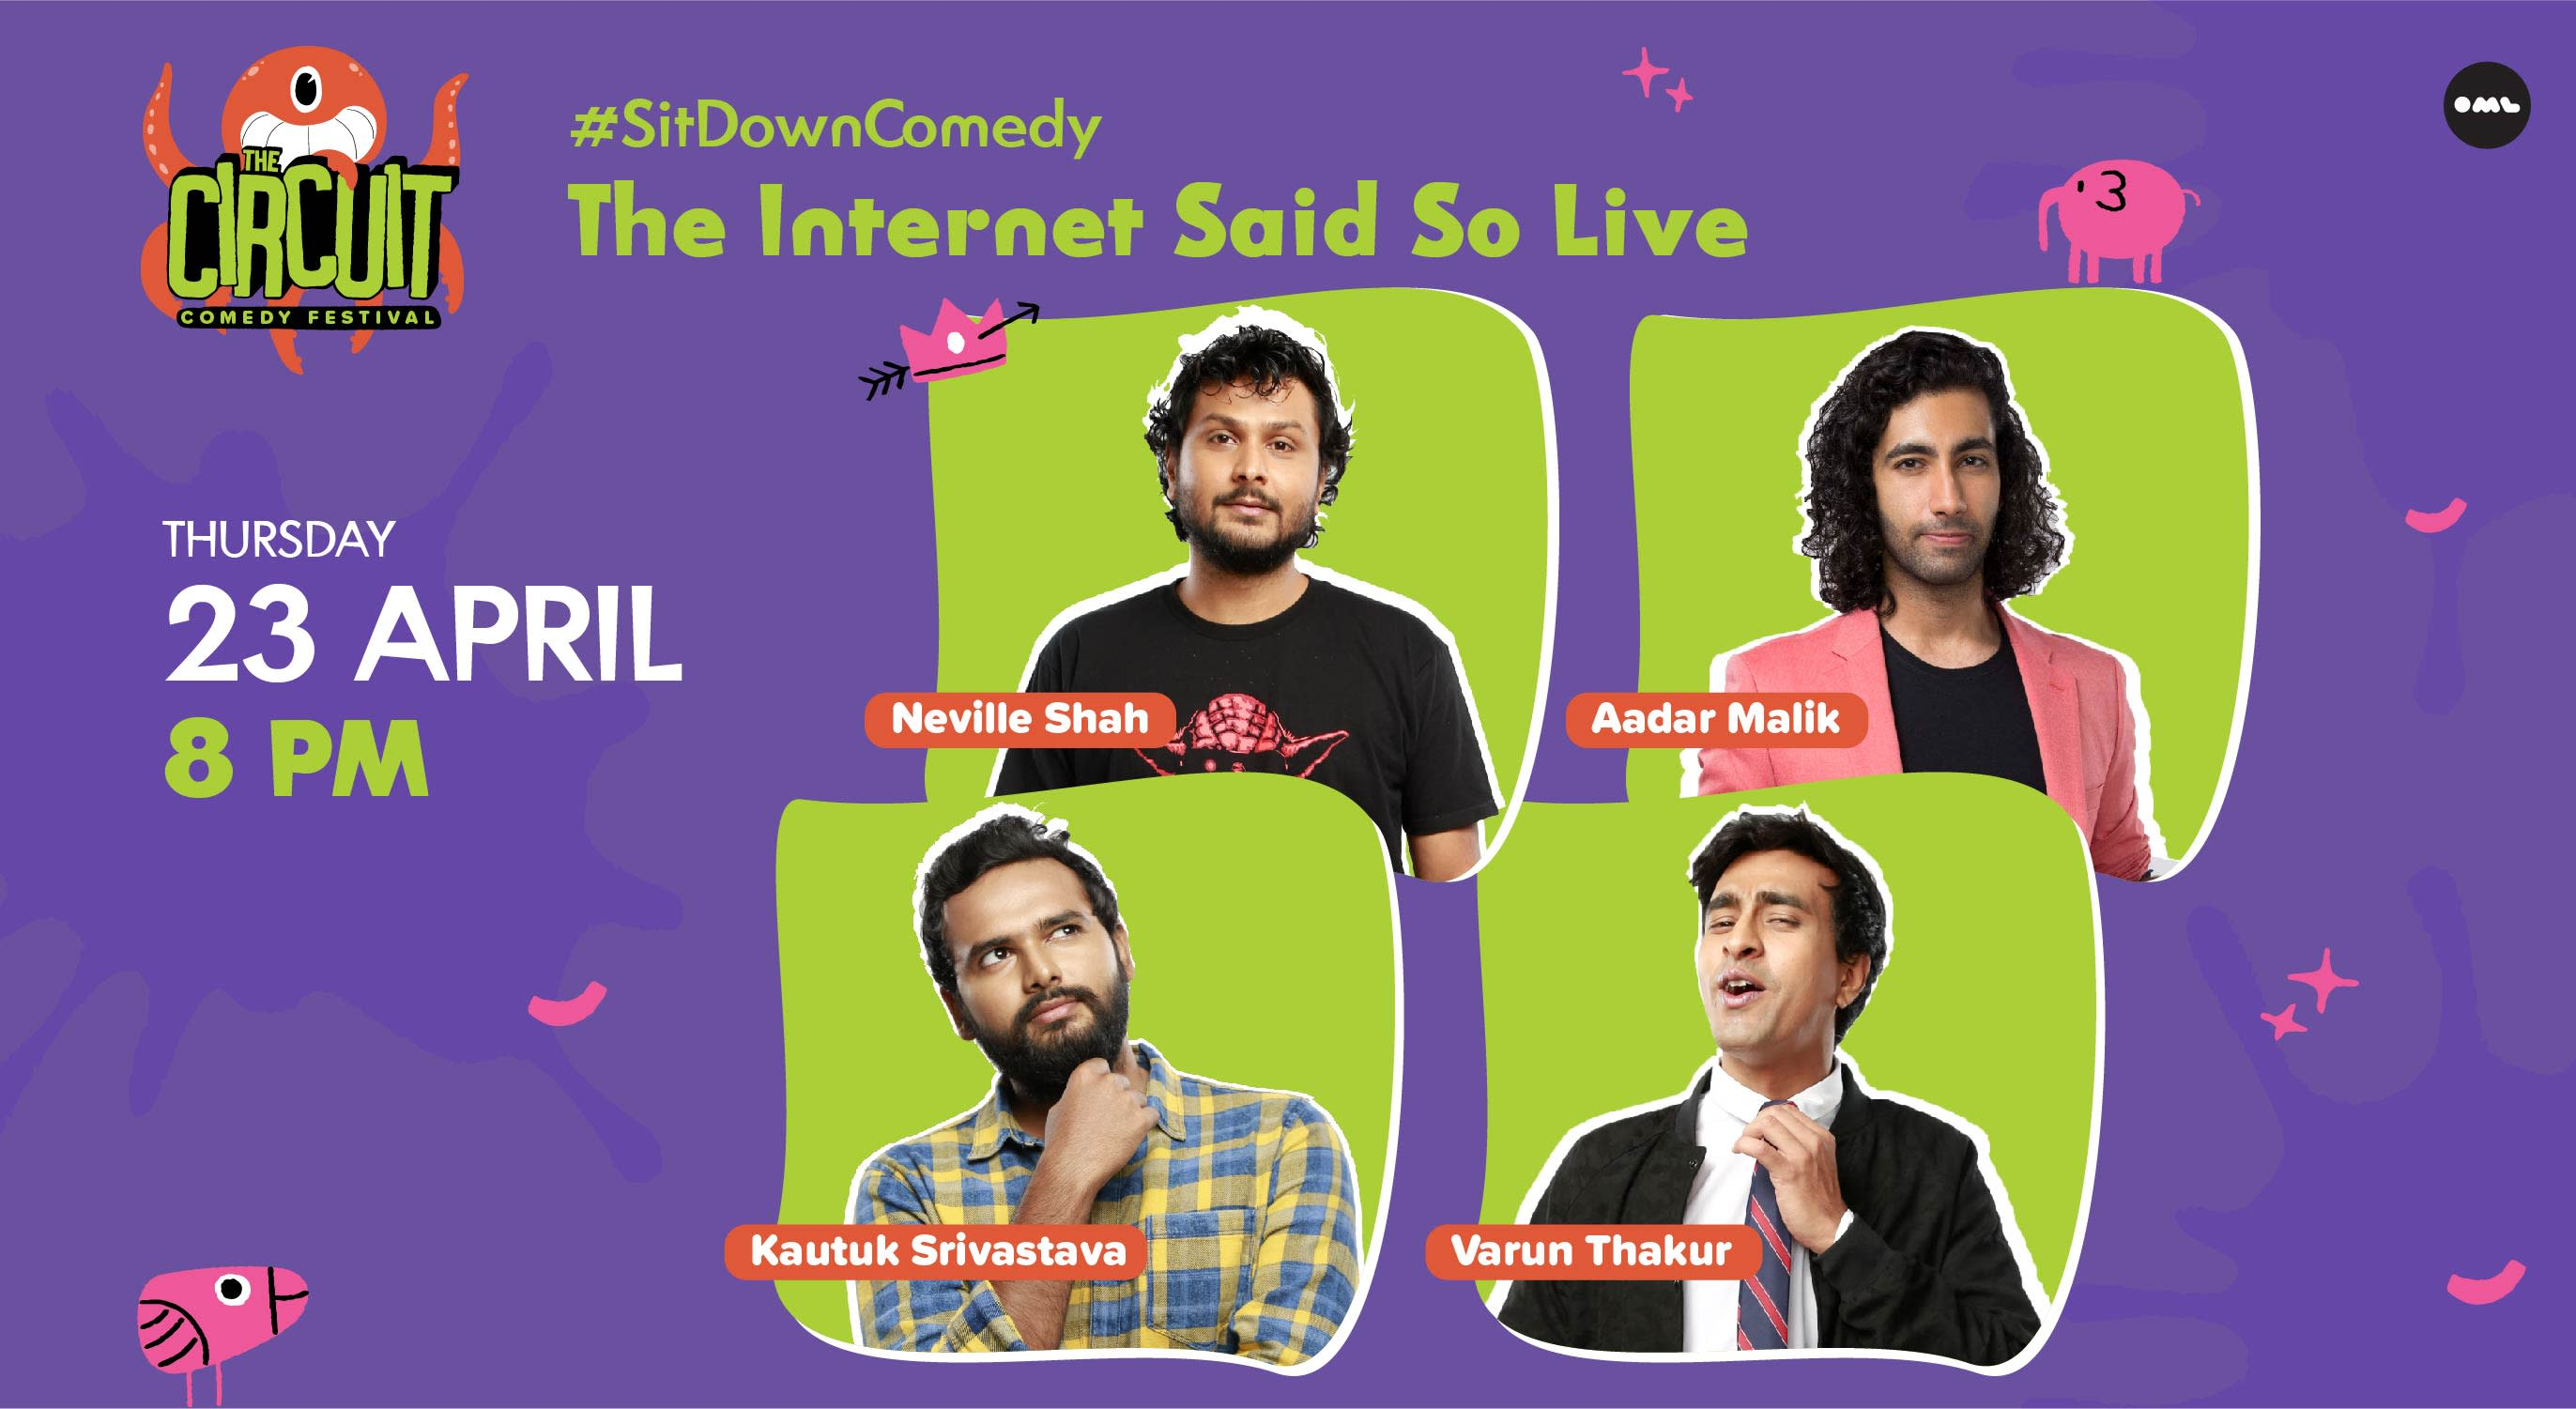 The Internet Said So Live ft. Neville Shah, Varun Thakur, Aadar Malik & Kautuk